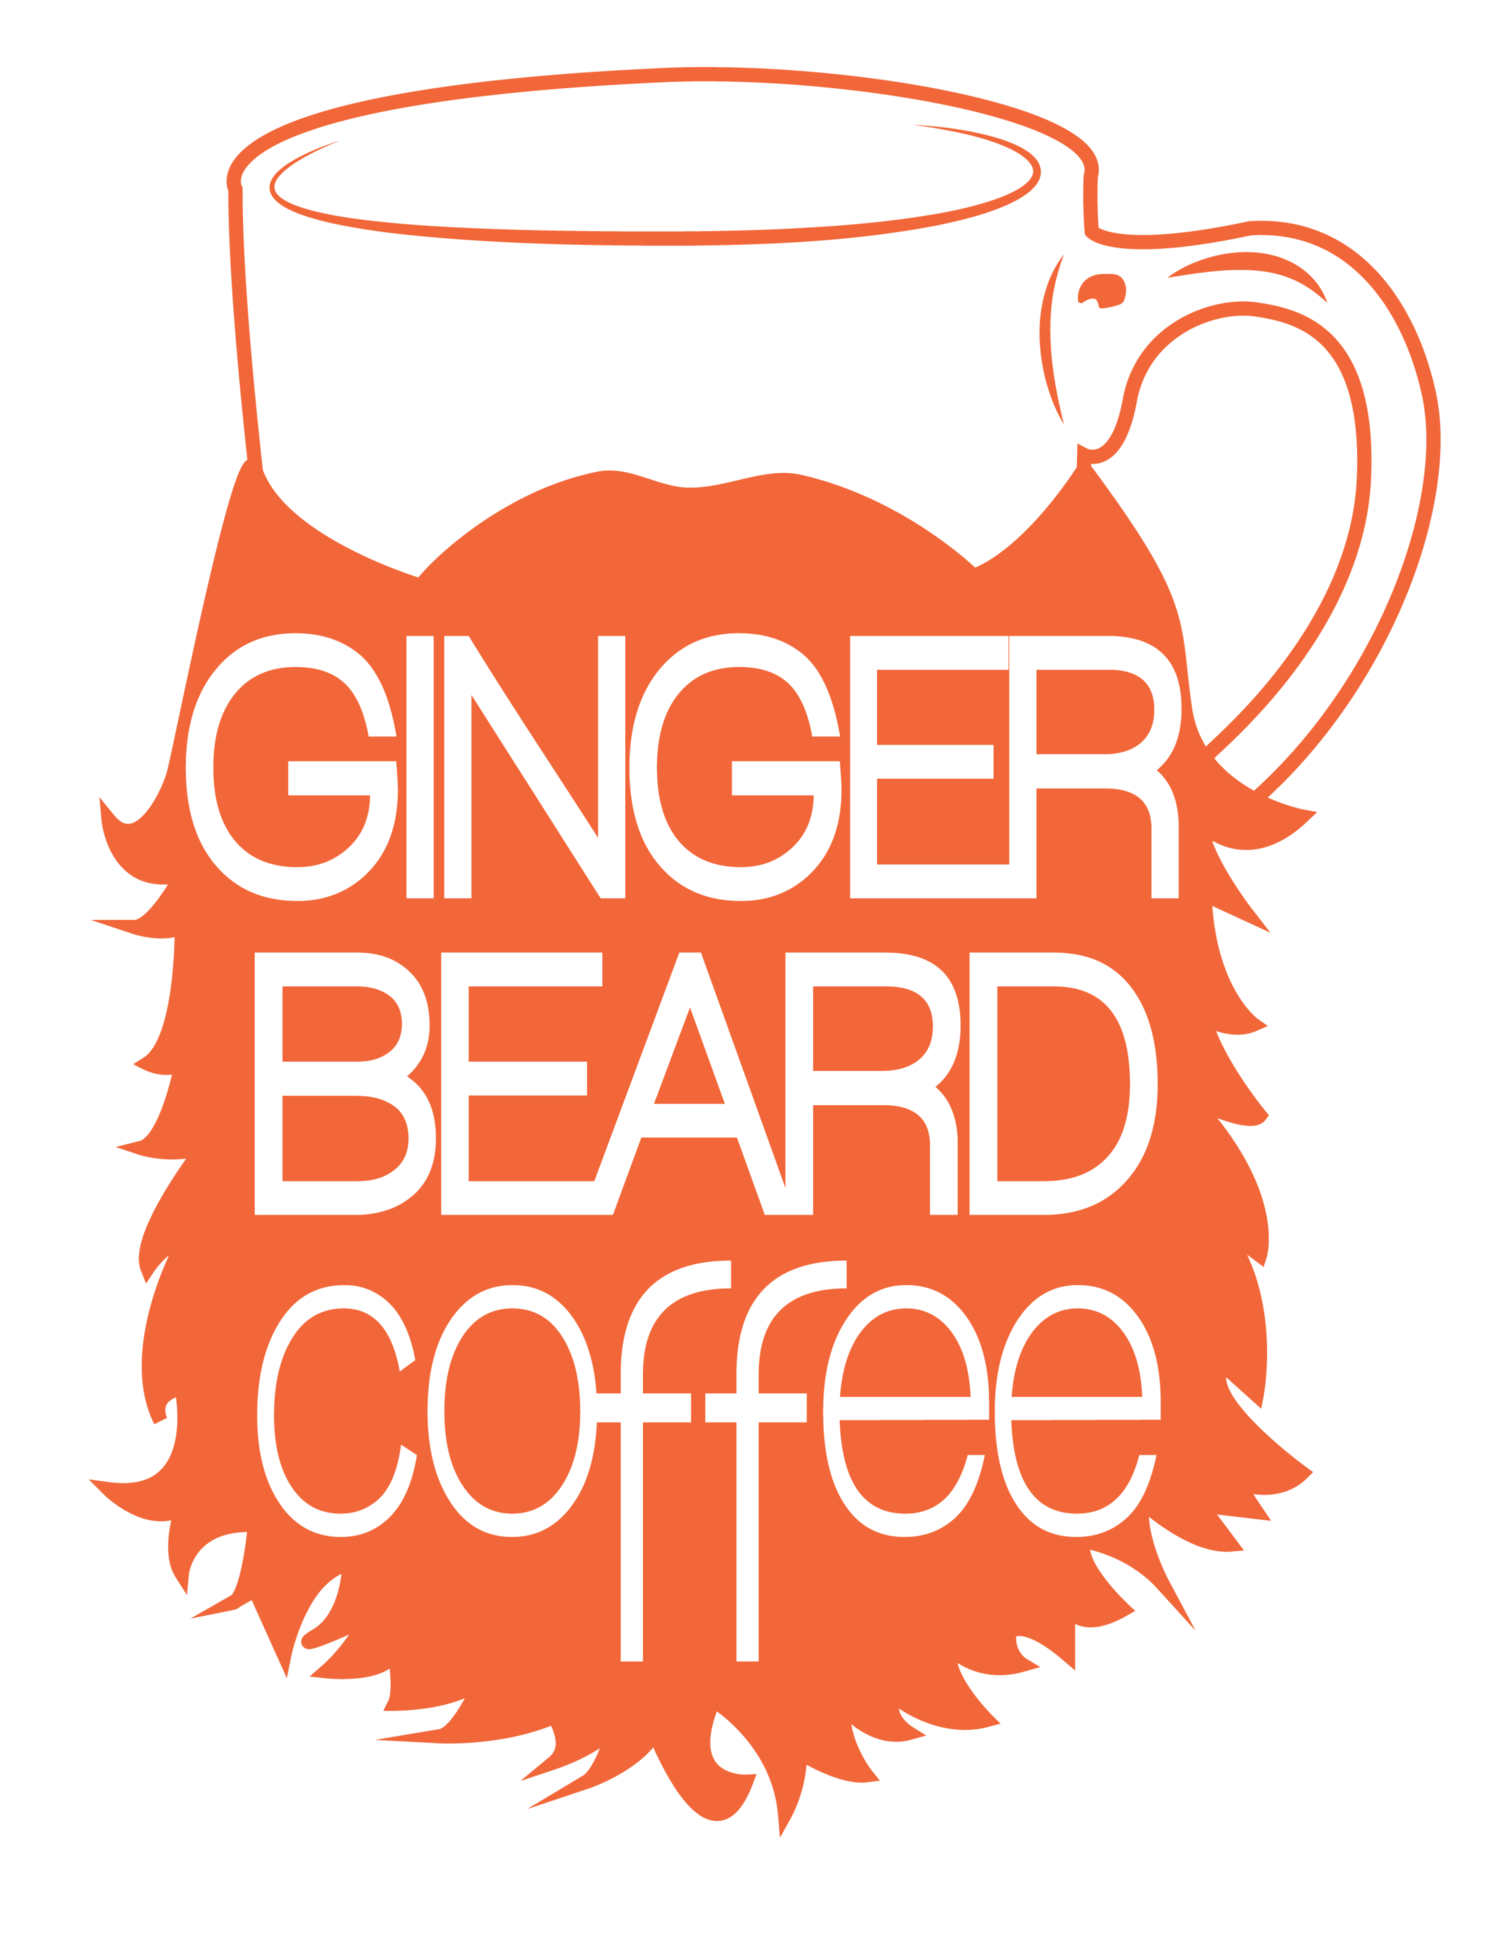 jpg black and white library Collection of free Begirded clipart ginger beard